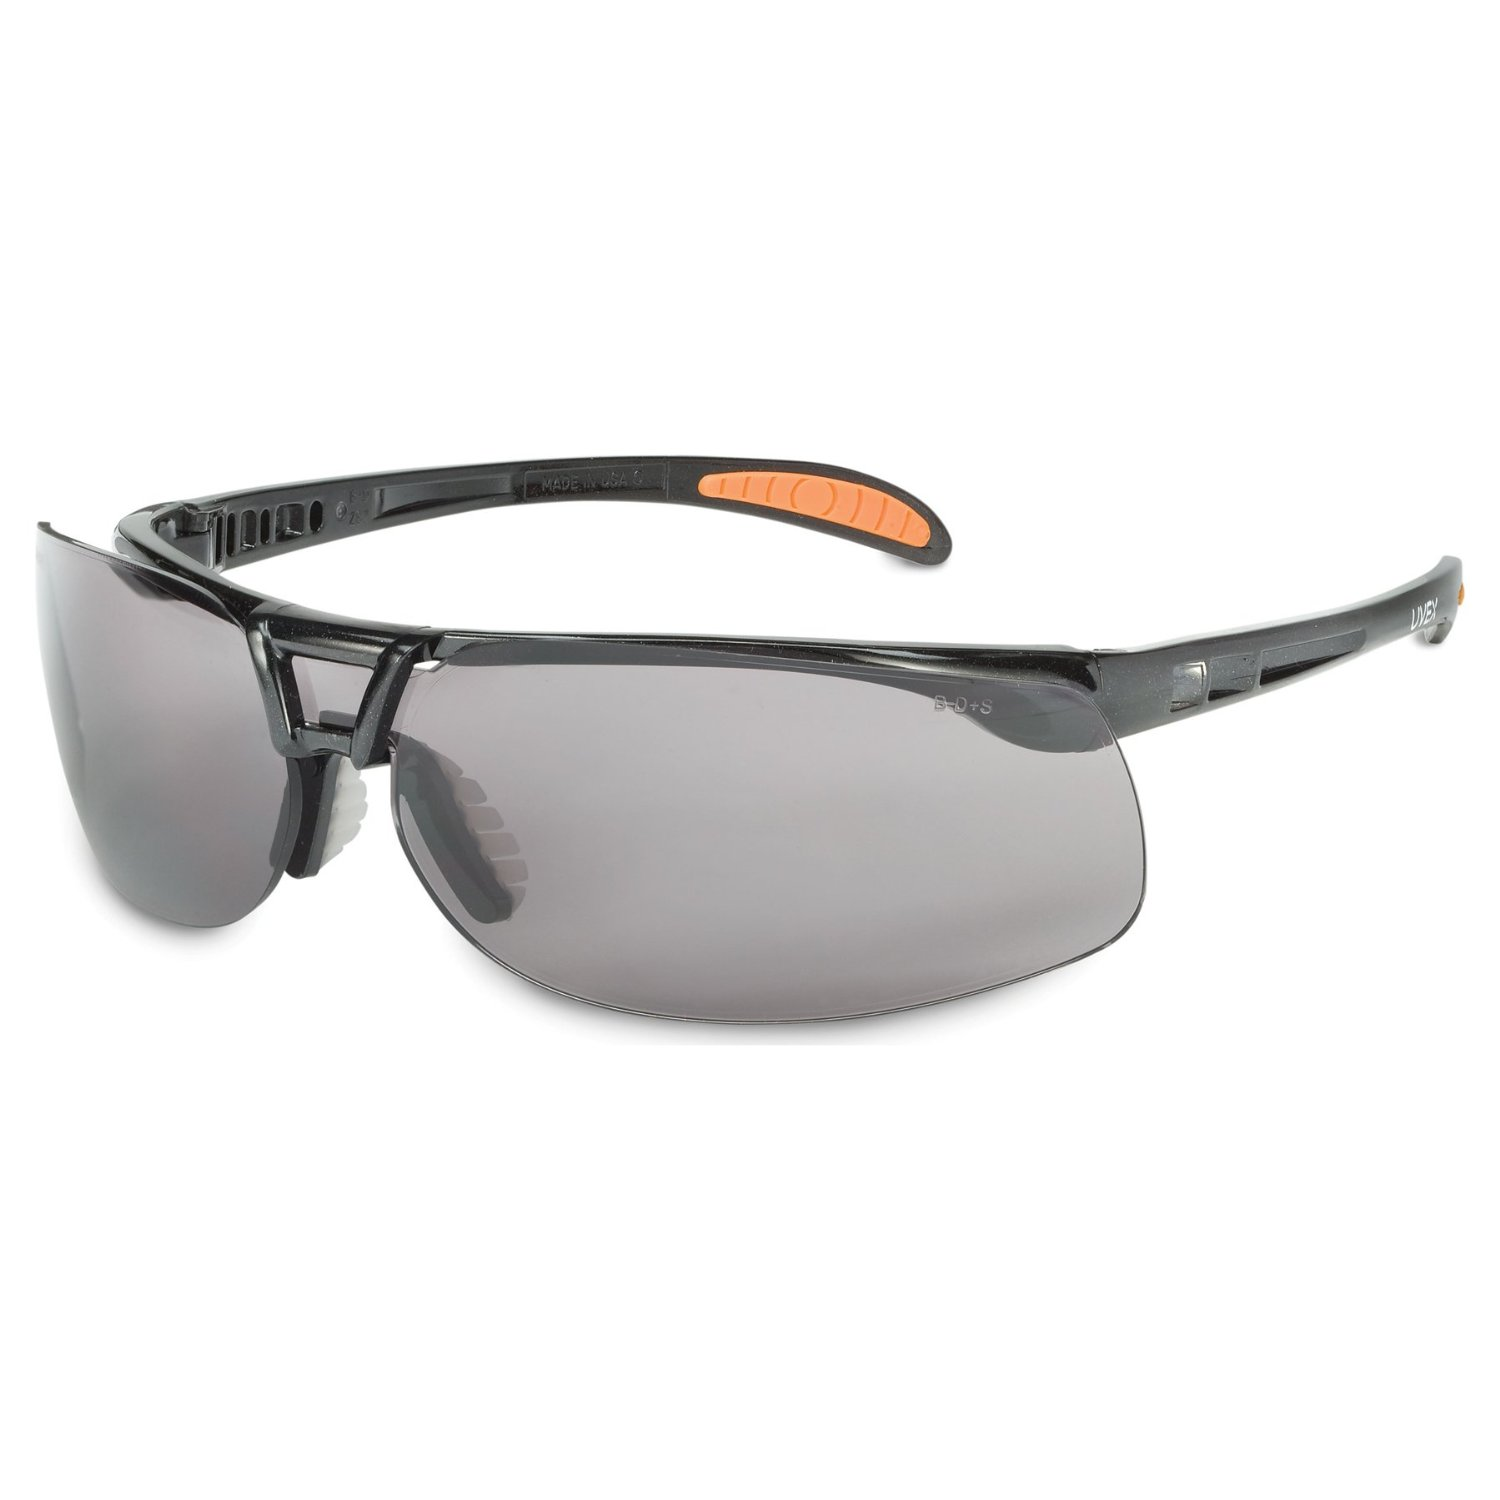 Uvex S4200 Protégé Safety Eyewear with a Cool Metallic Black Frame